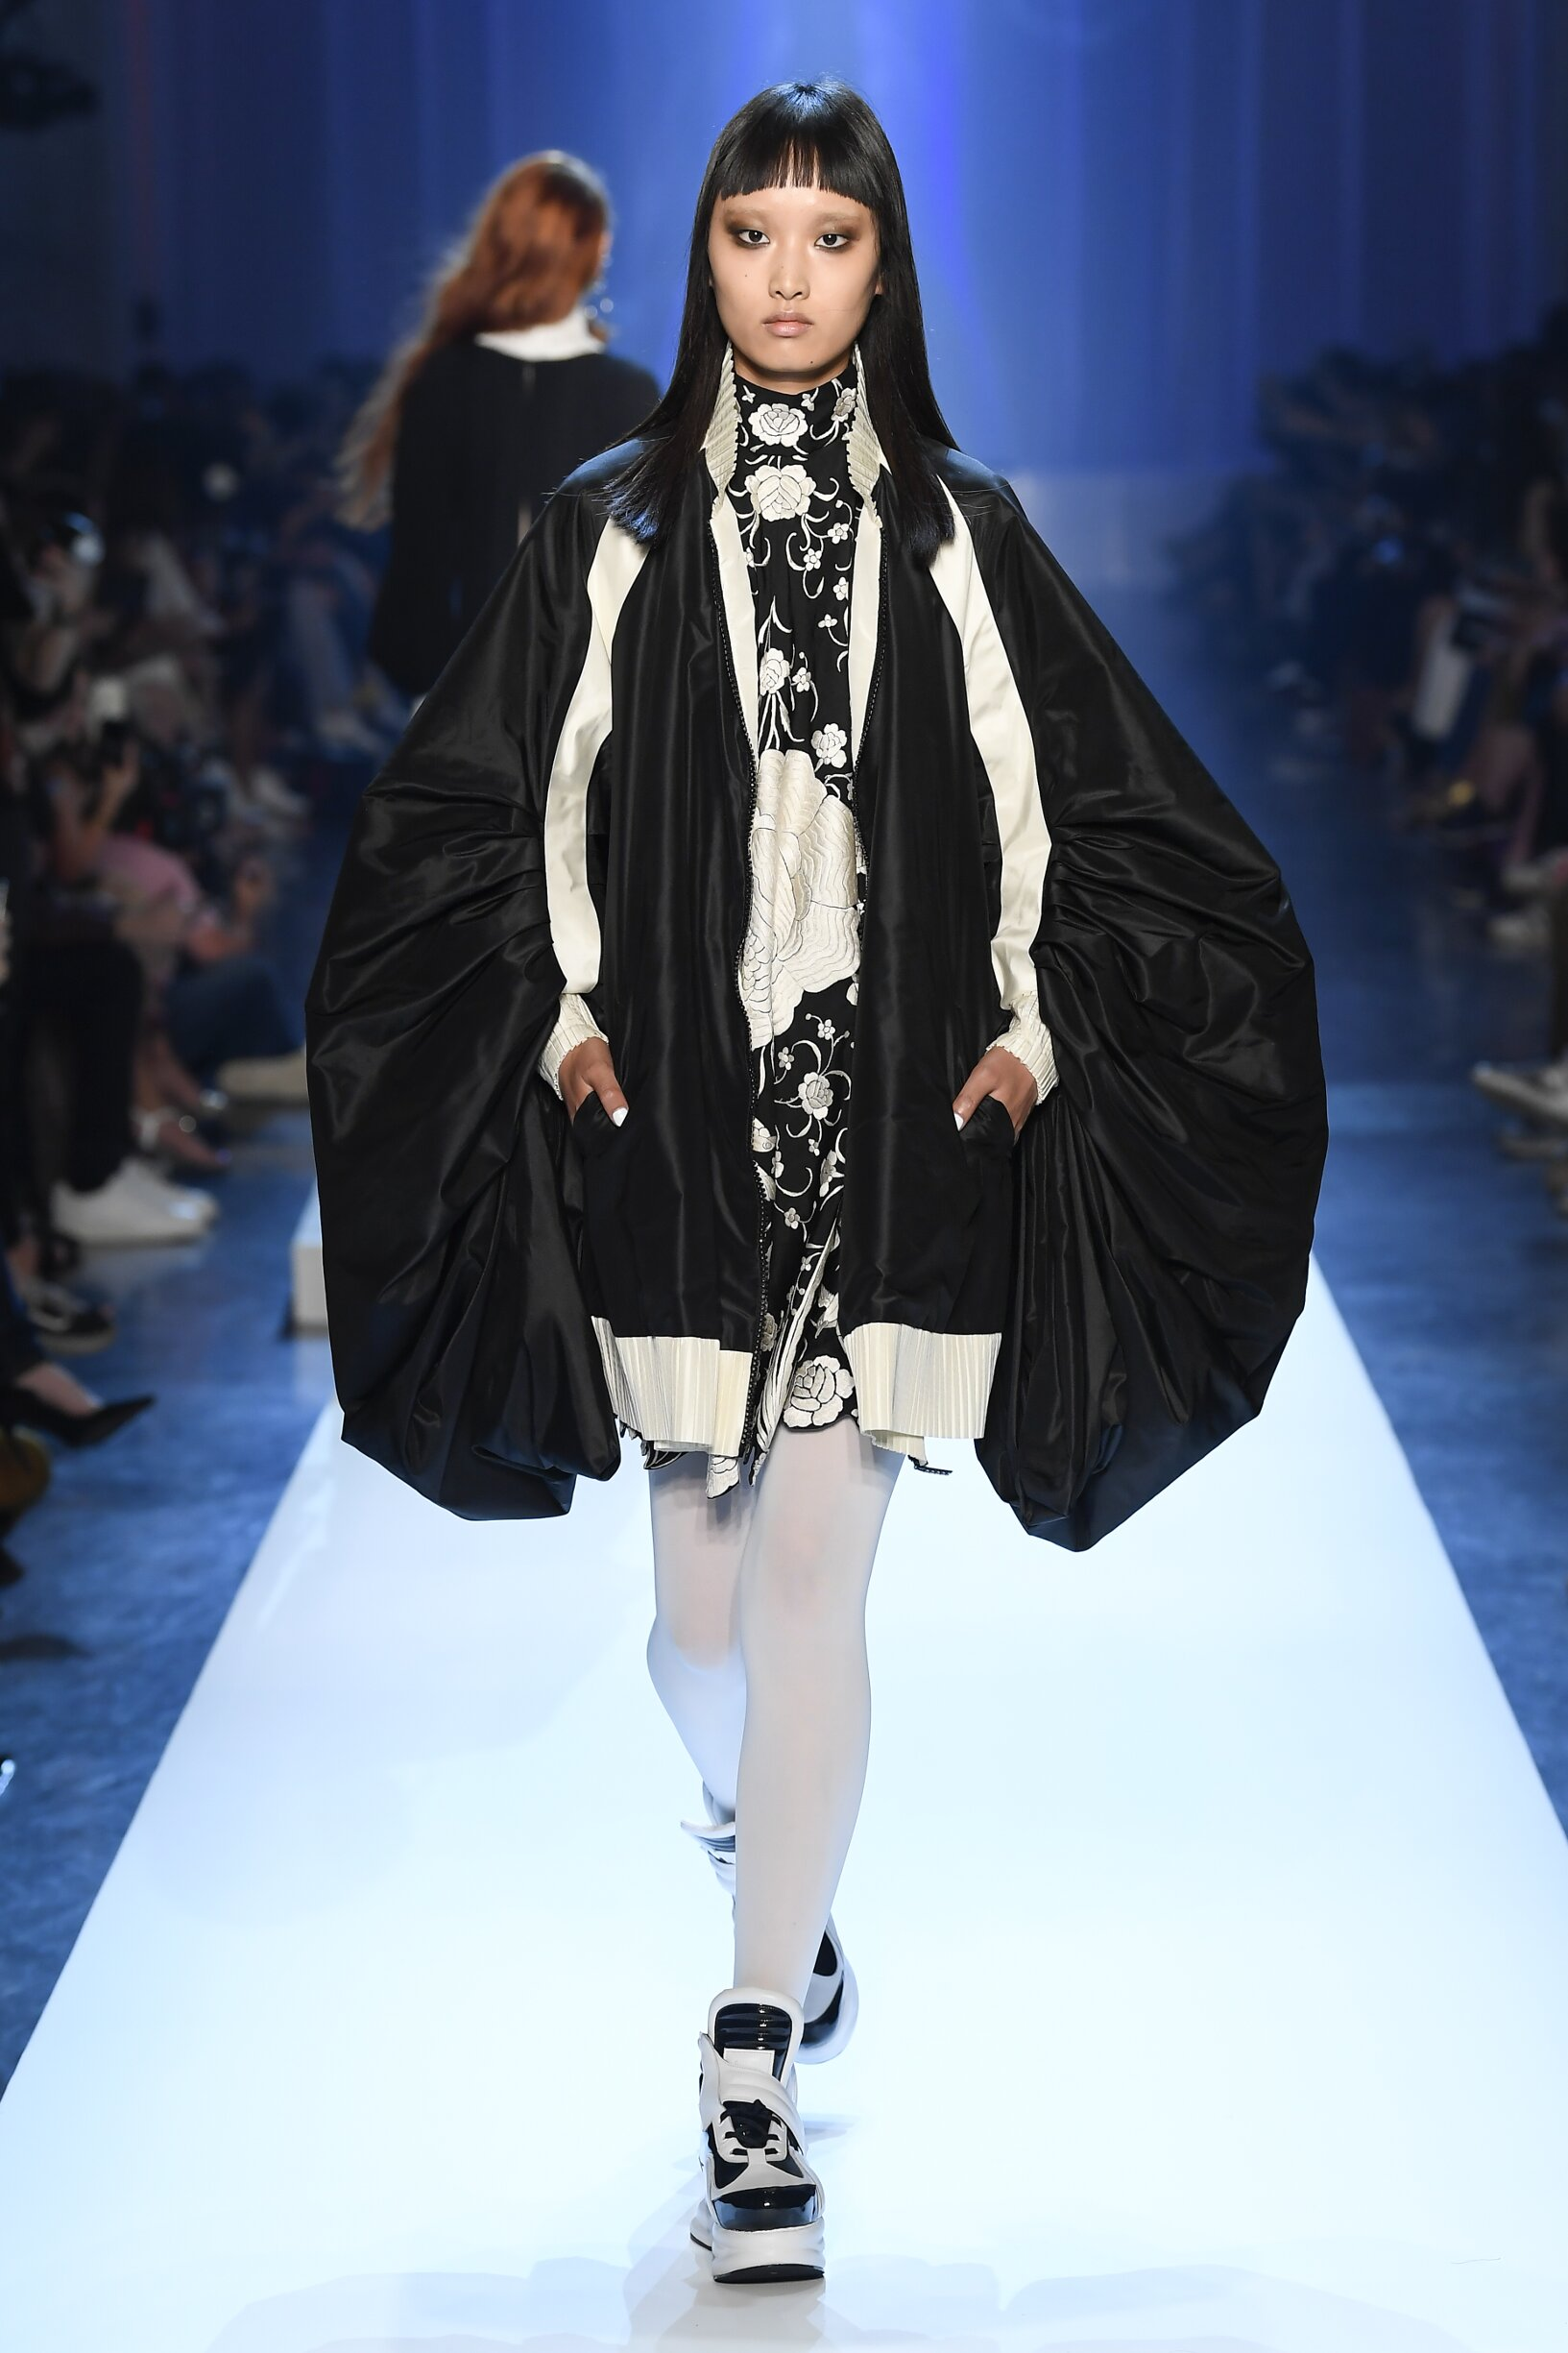 Jean-Paul Gaultier Haute Couture Winter 2018 Catwalk